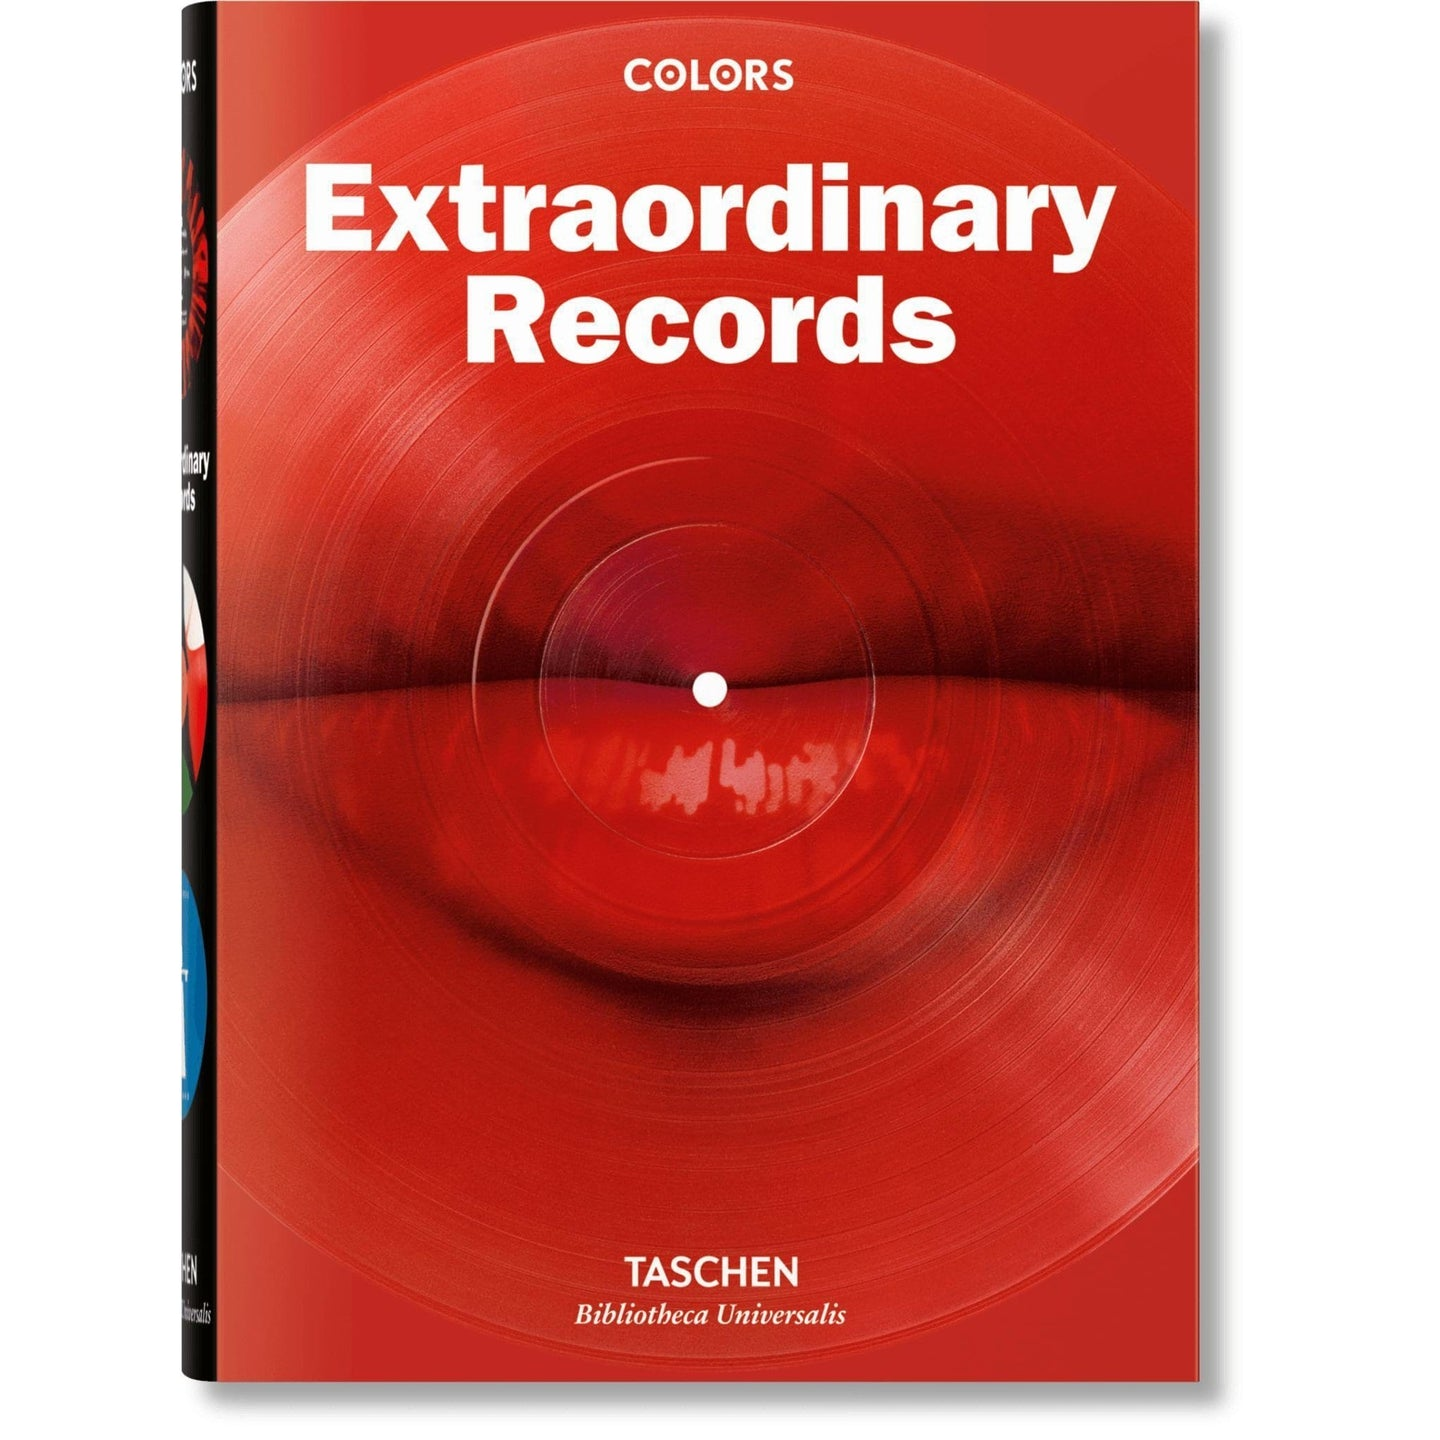 Taschen Extraordinary Records / Neighborhood Goods